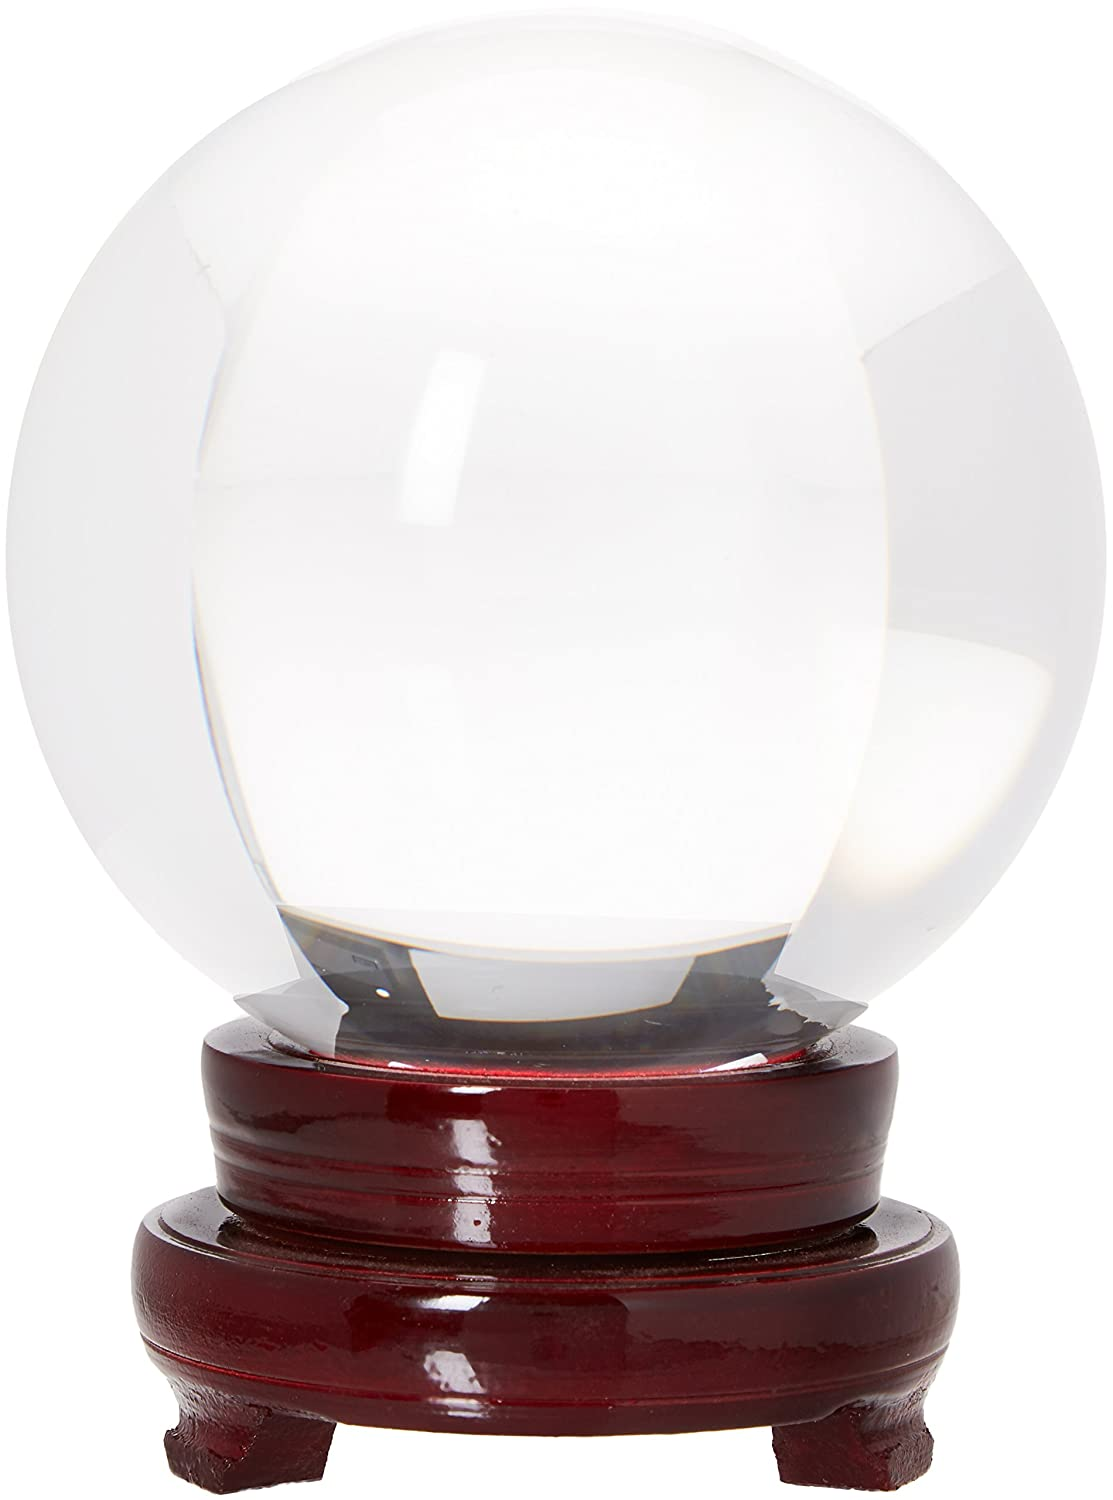 LONGWIN 120mm (4.7 inch) Large Crystal Divination Ball Photography Props Free Wooden Stand FBA_LS028B-KJ